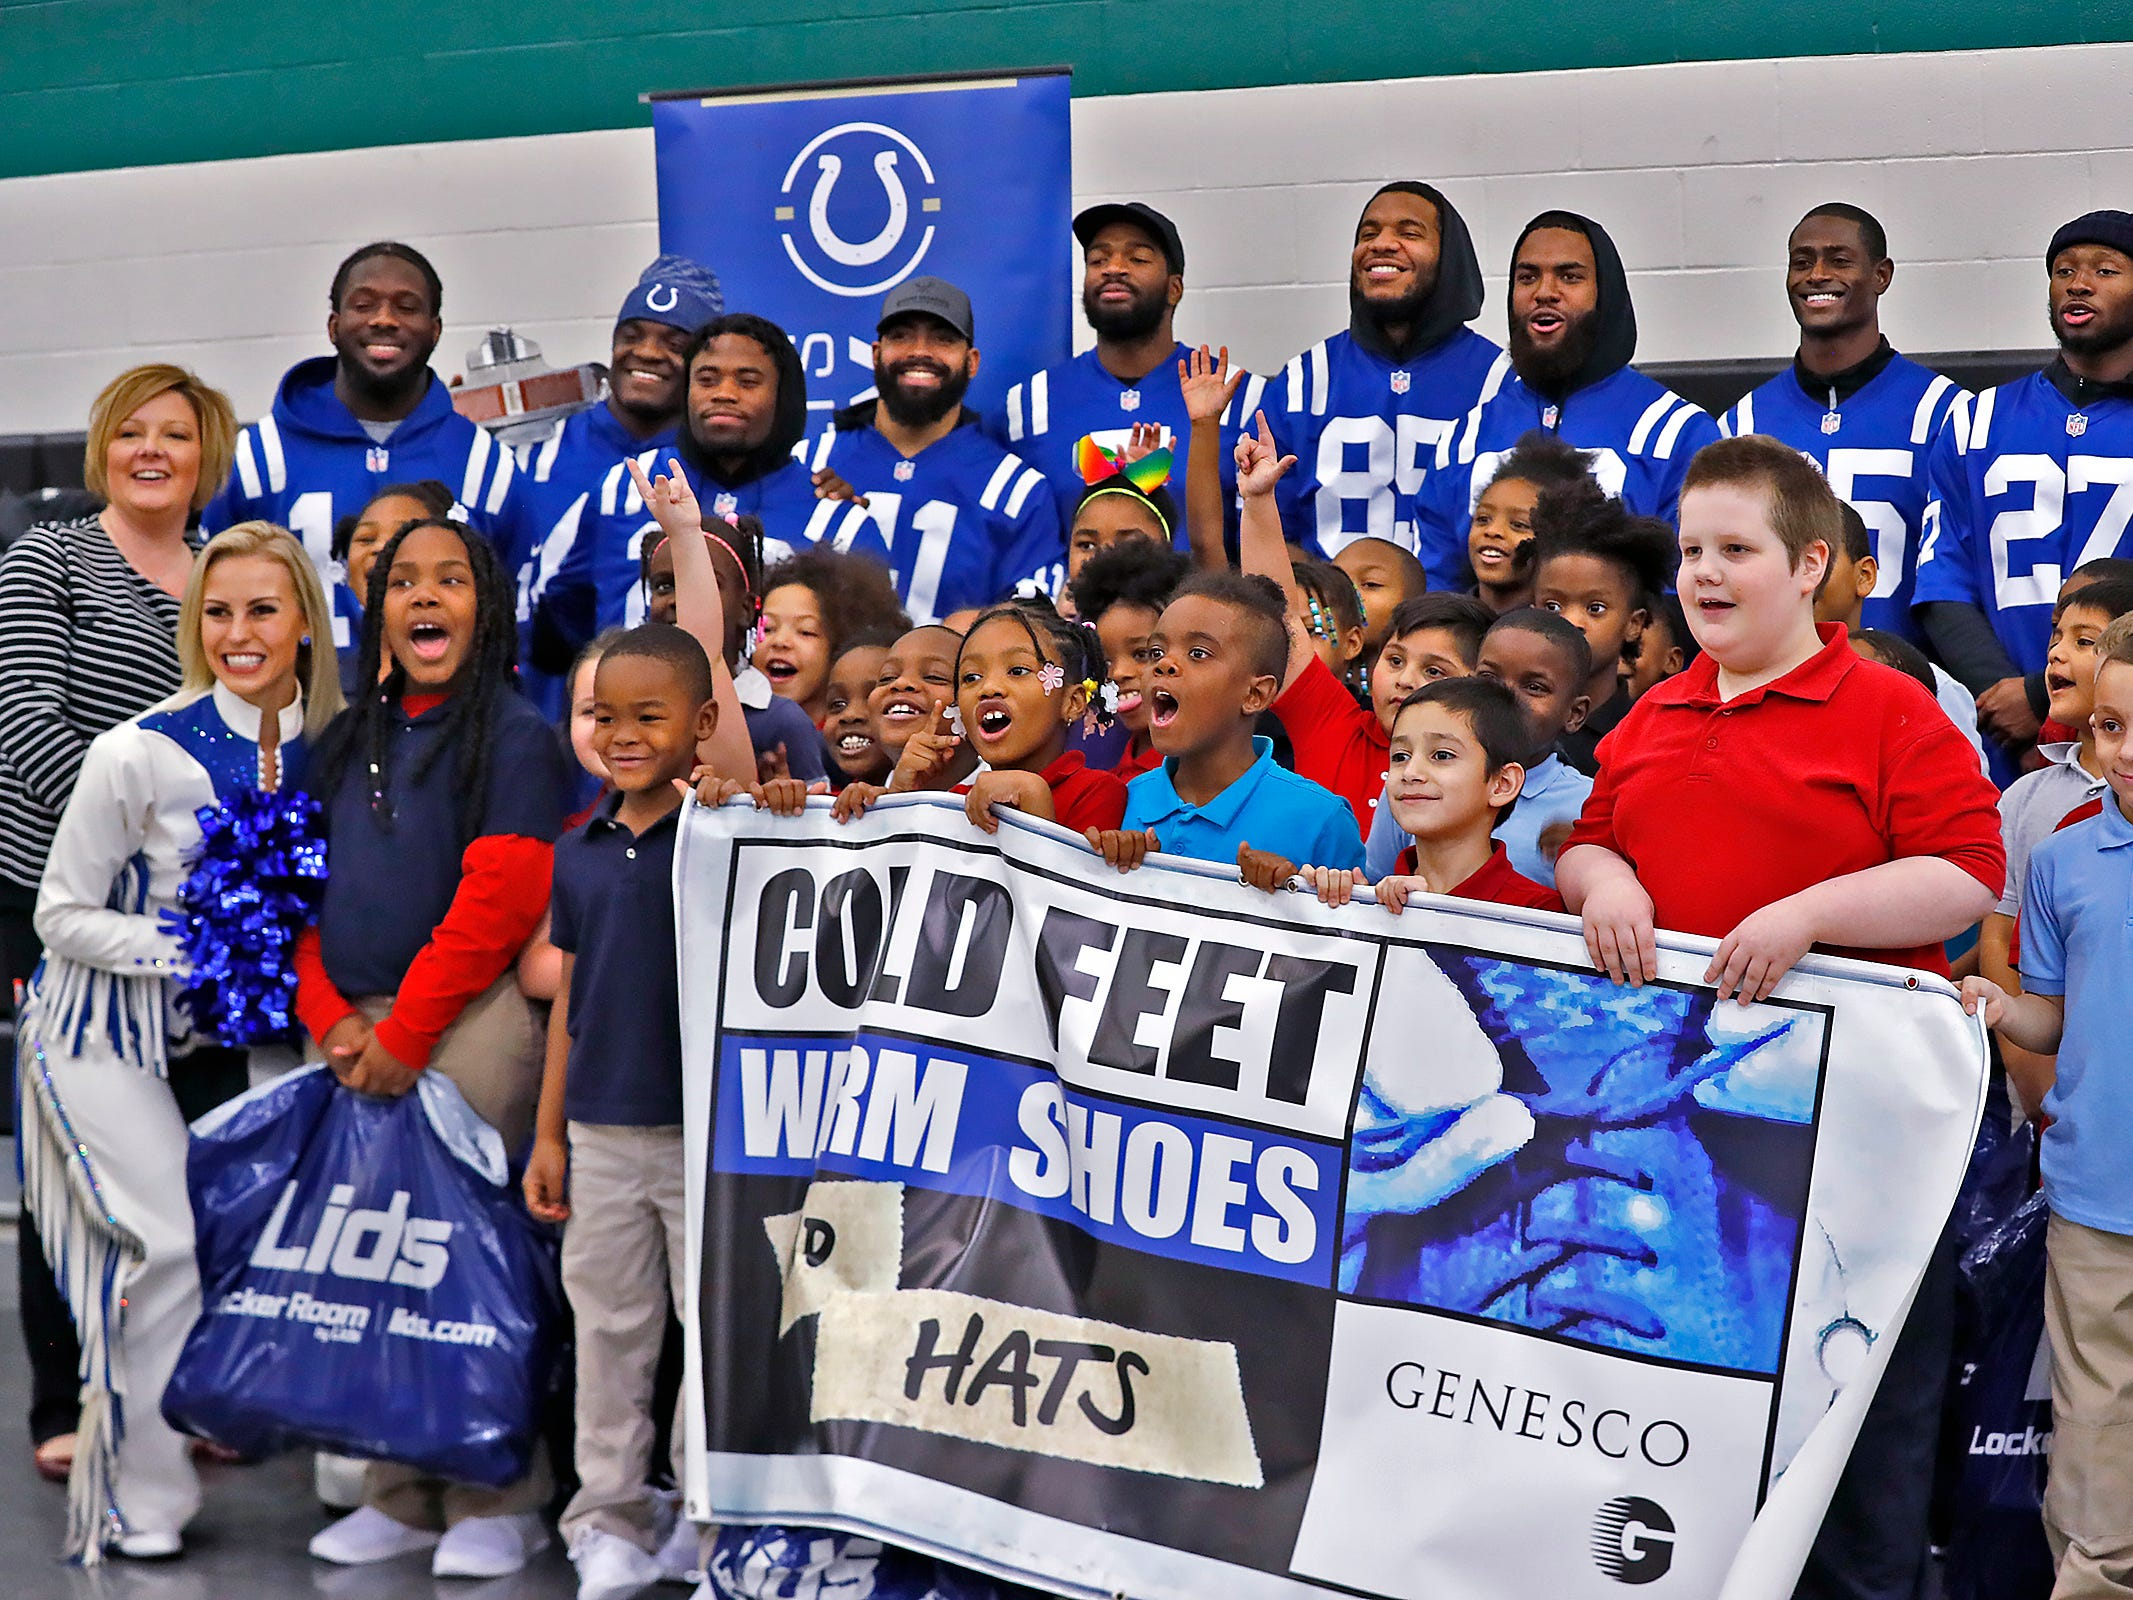 Students, teachers, Colts players, and volunteers pose for  photo after the kids receives new shoes at Brookside School 54, Monday, Dec. 3, 2018.  Colts players and staff joined as LIDS Sports and its parent company Genesco fit and gave new shoes, socks, hats, and snacks to students as part of the 13th annual Cold Feet, Warm Shoes event.